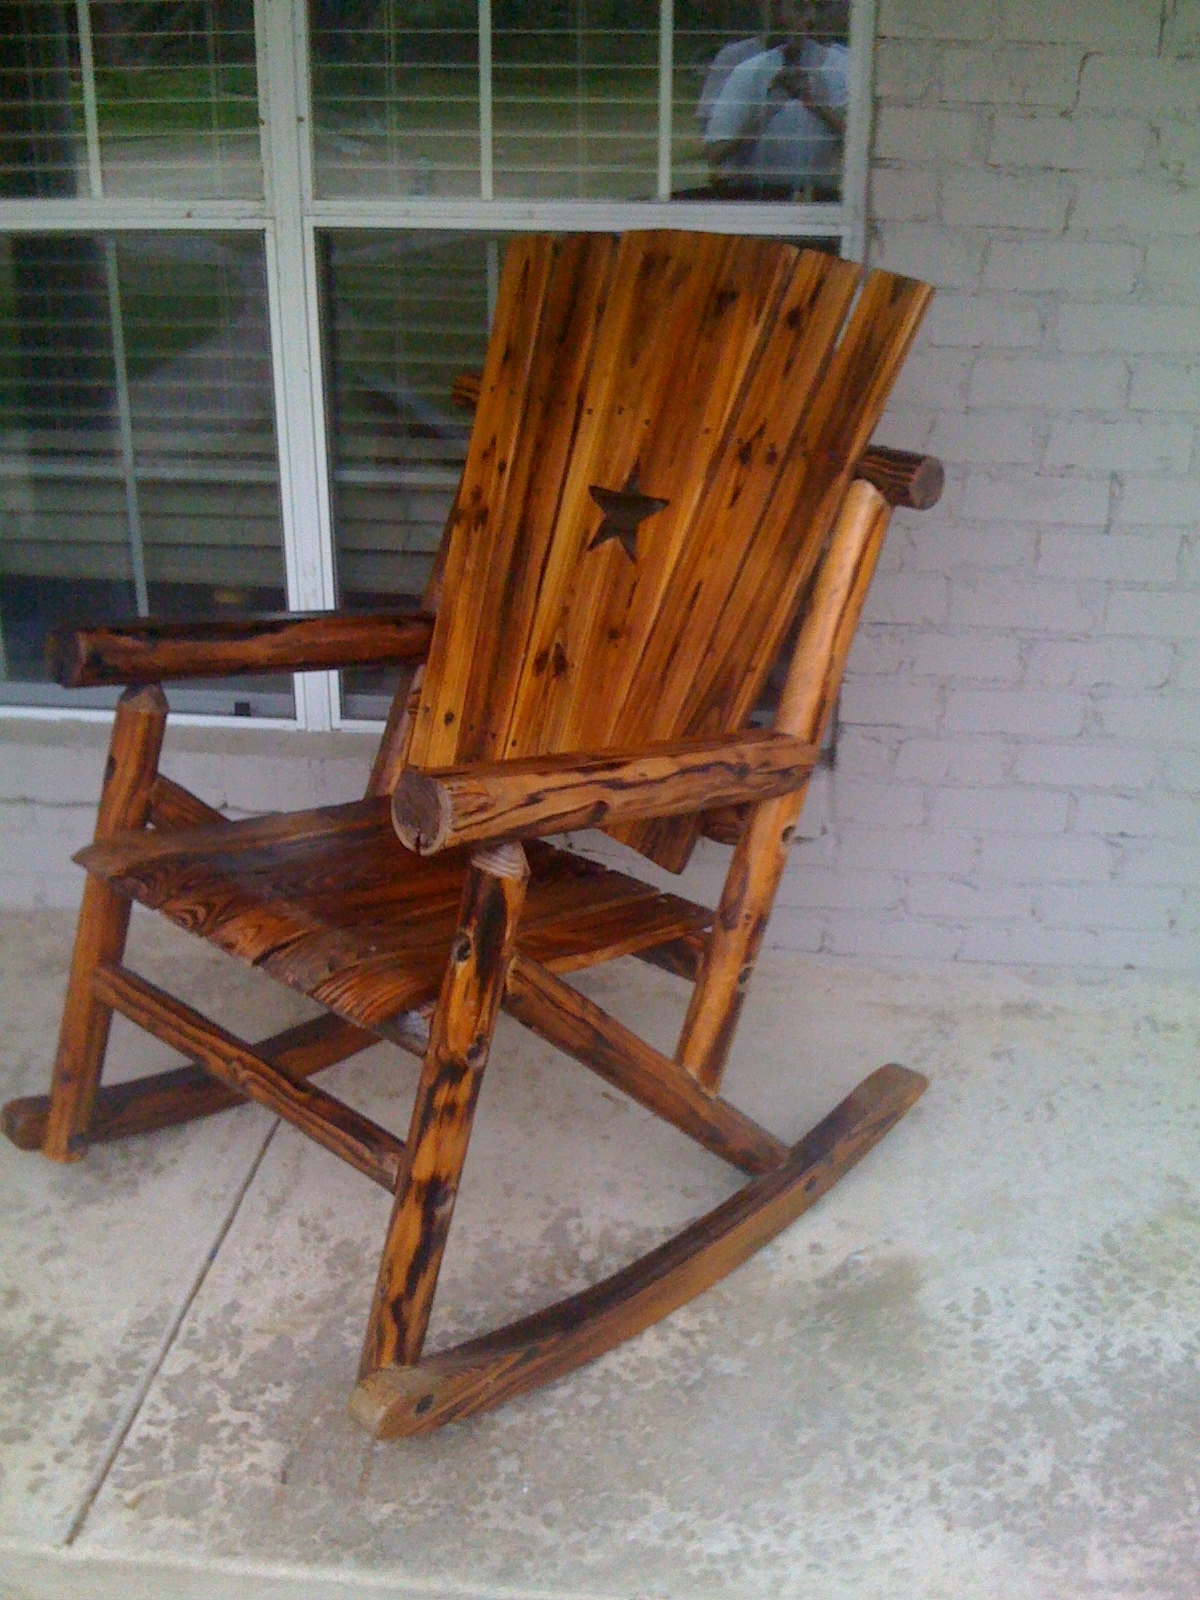 Popular Photo of Rocking Chair Outdoor Wooden